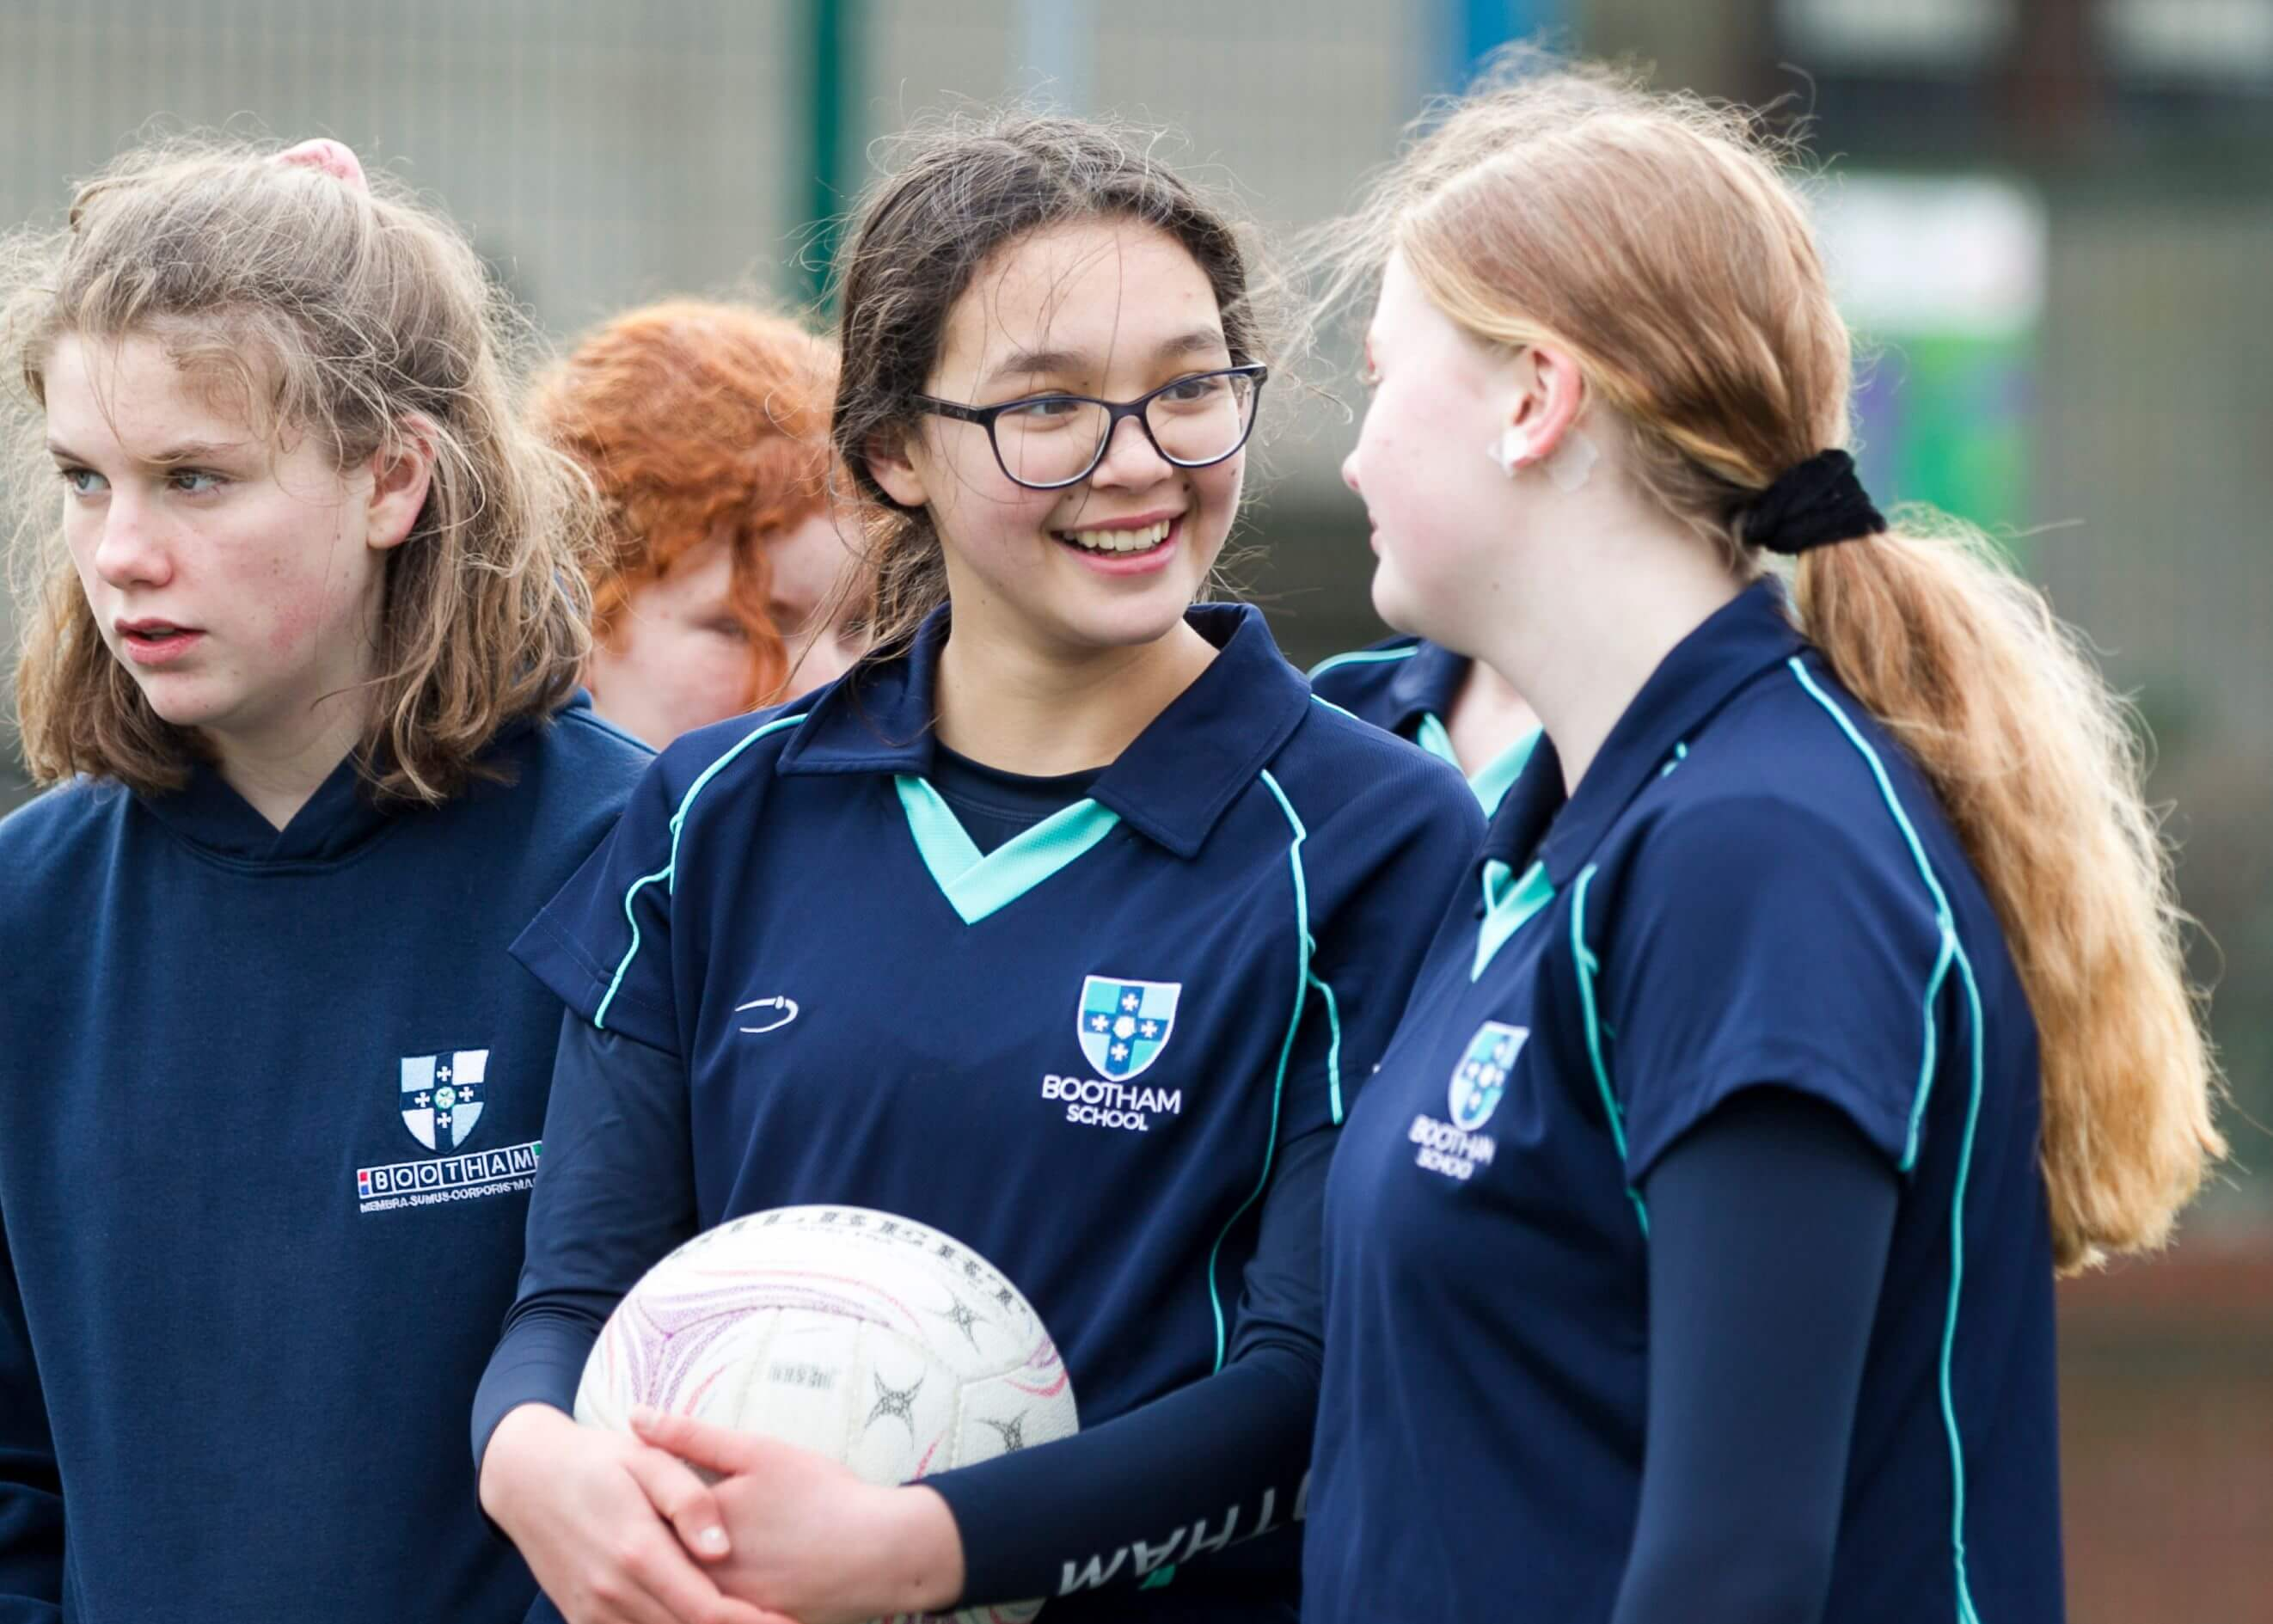 A world-changing education awaits at Bootham School